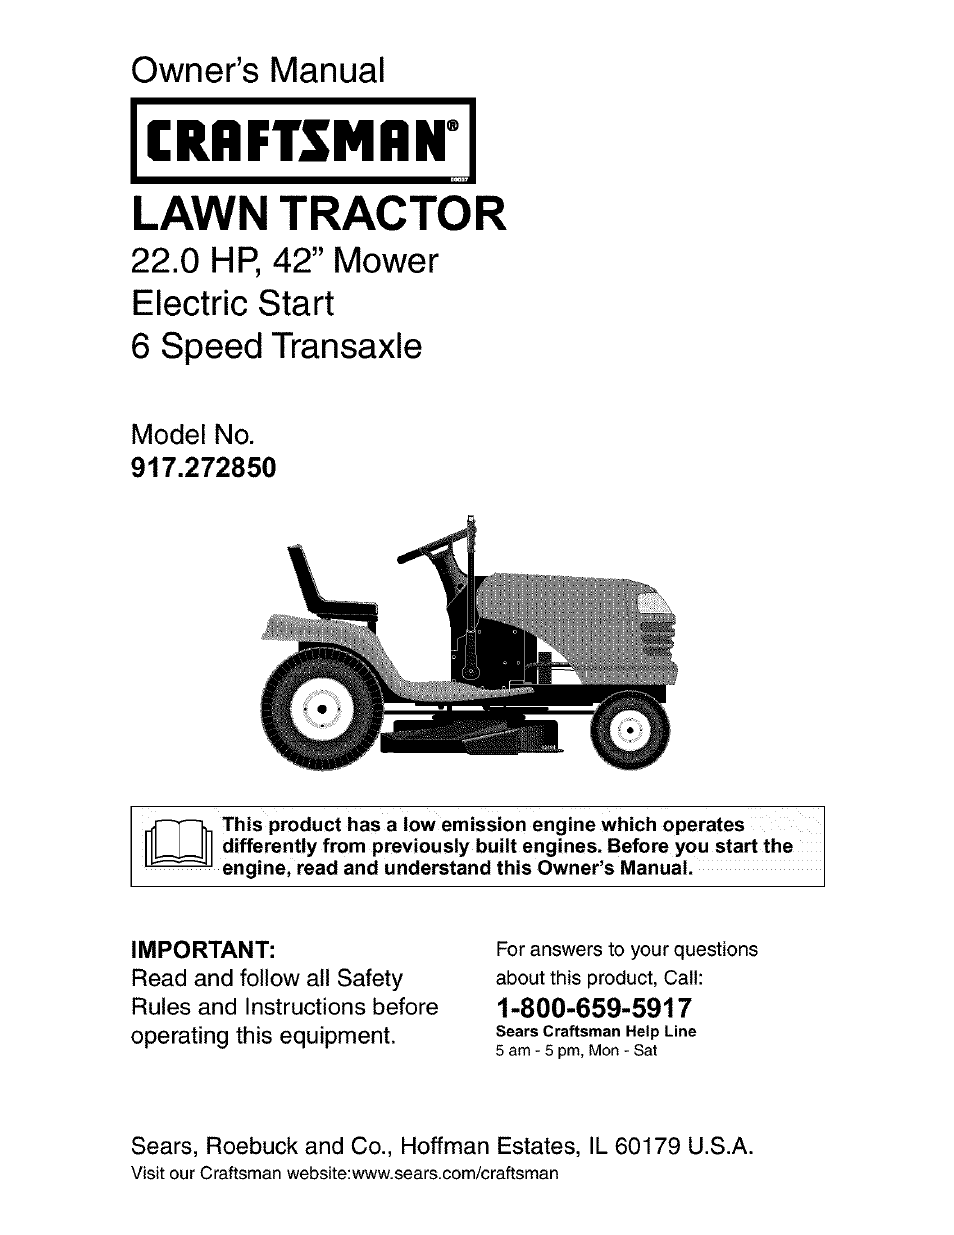 A8E97 Manual For Craftsman Lawn Mower Model 917 | Wiring LibraryWiring Library